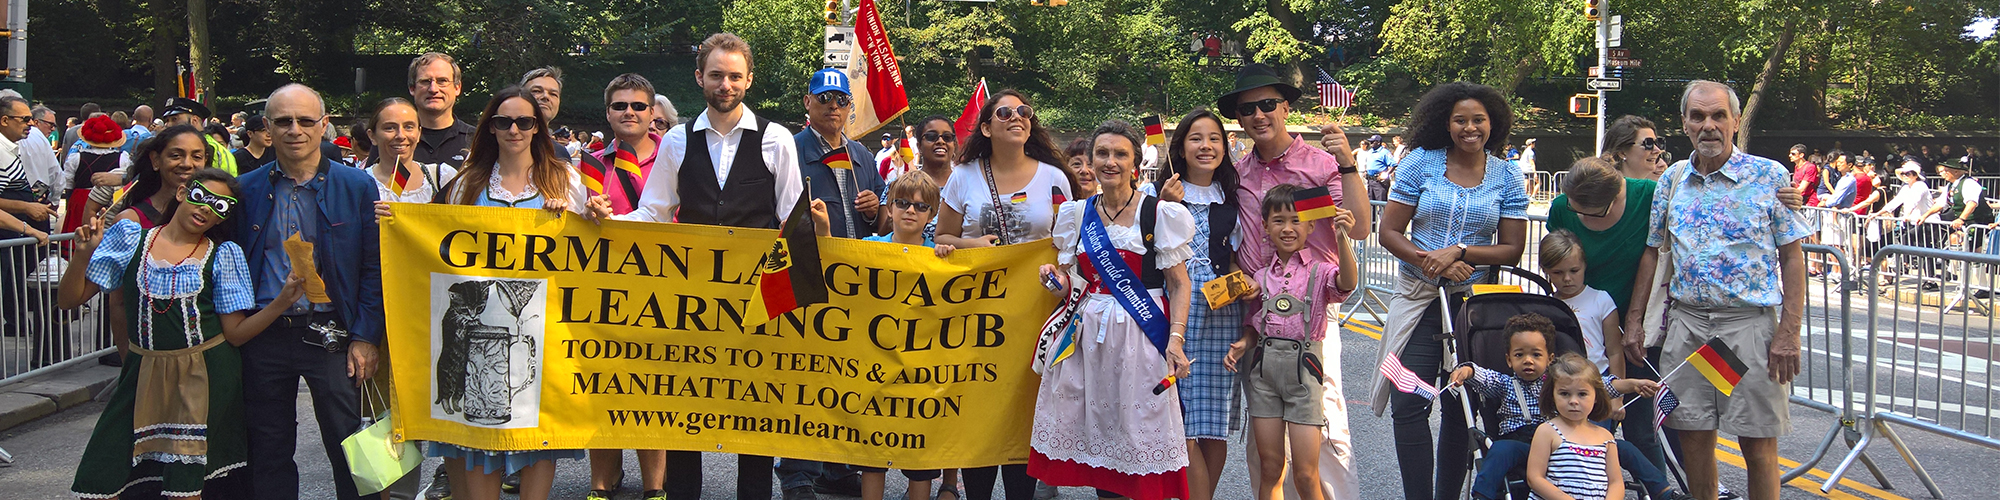 Club Members Displaying German Language Learning Club Banner